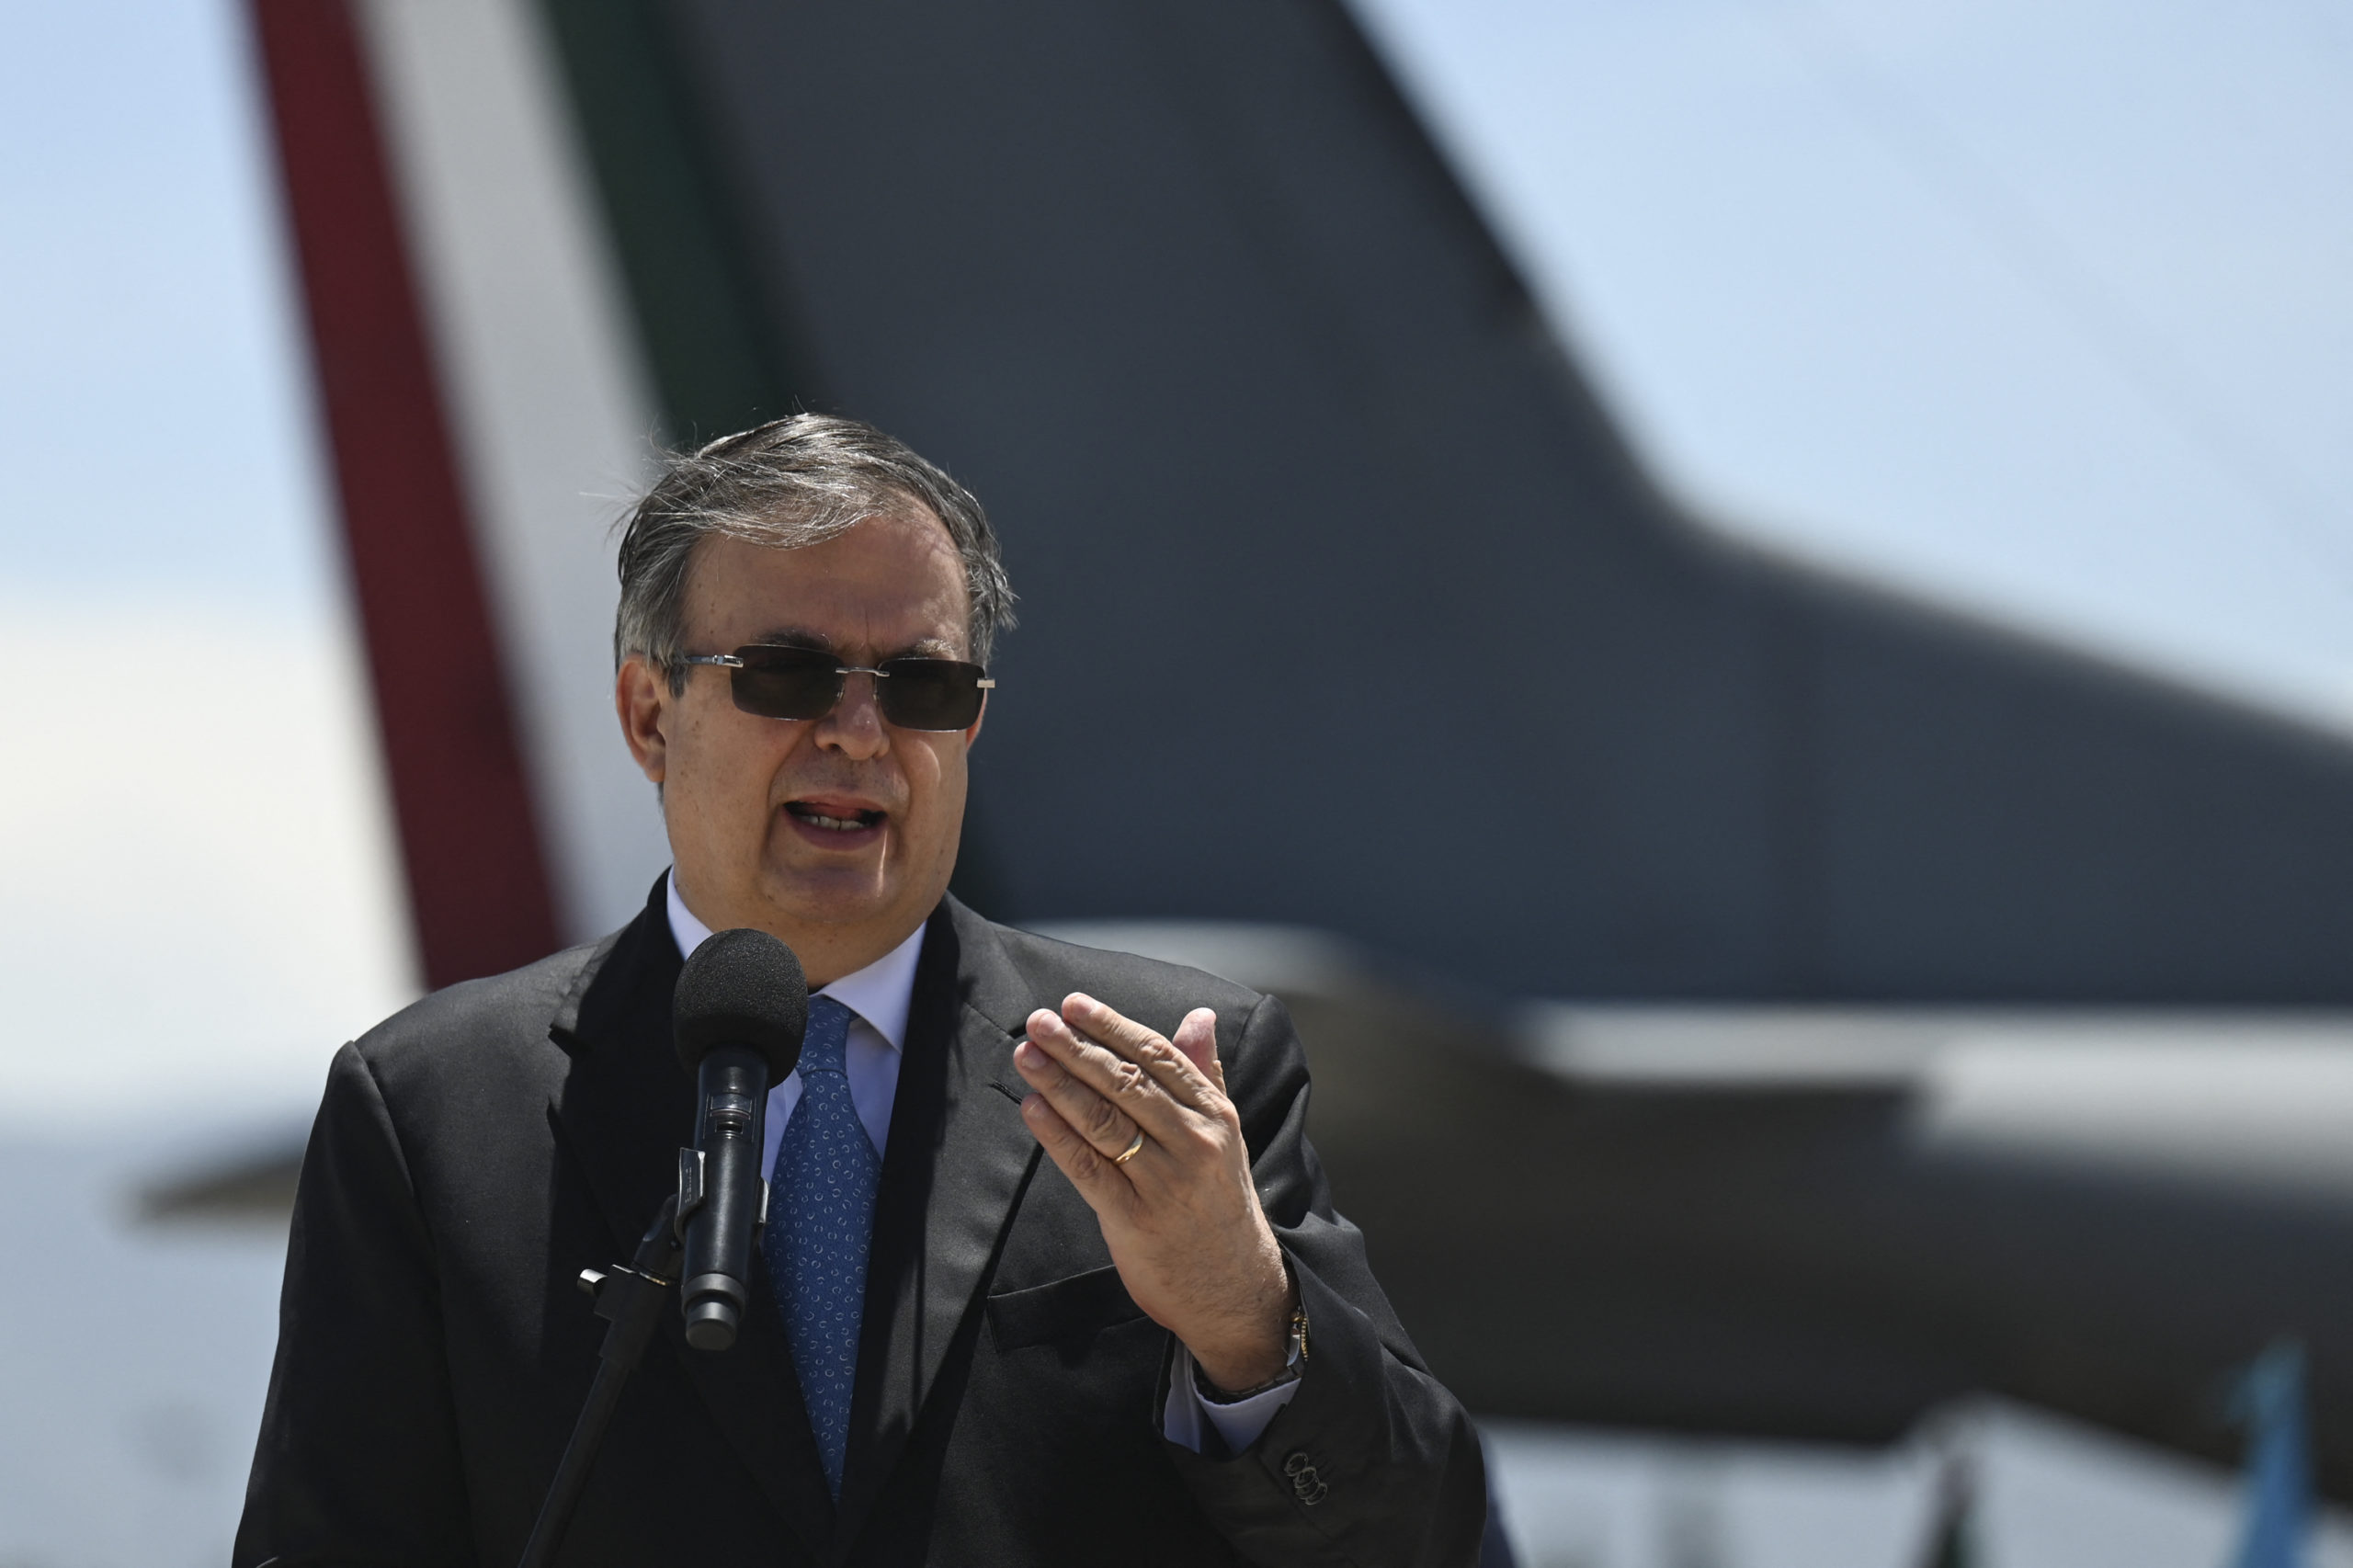 Mexican Foreign Minister Marcelo Ebrard speaks upon his arrival at the Air Force Base in Guatemala City, on June 24, 2021. (Photo by JOHAN ORDONEZ/AFP via Getty Images)